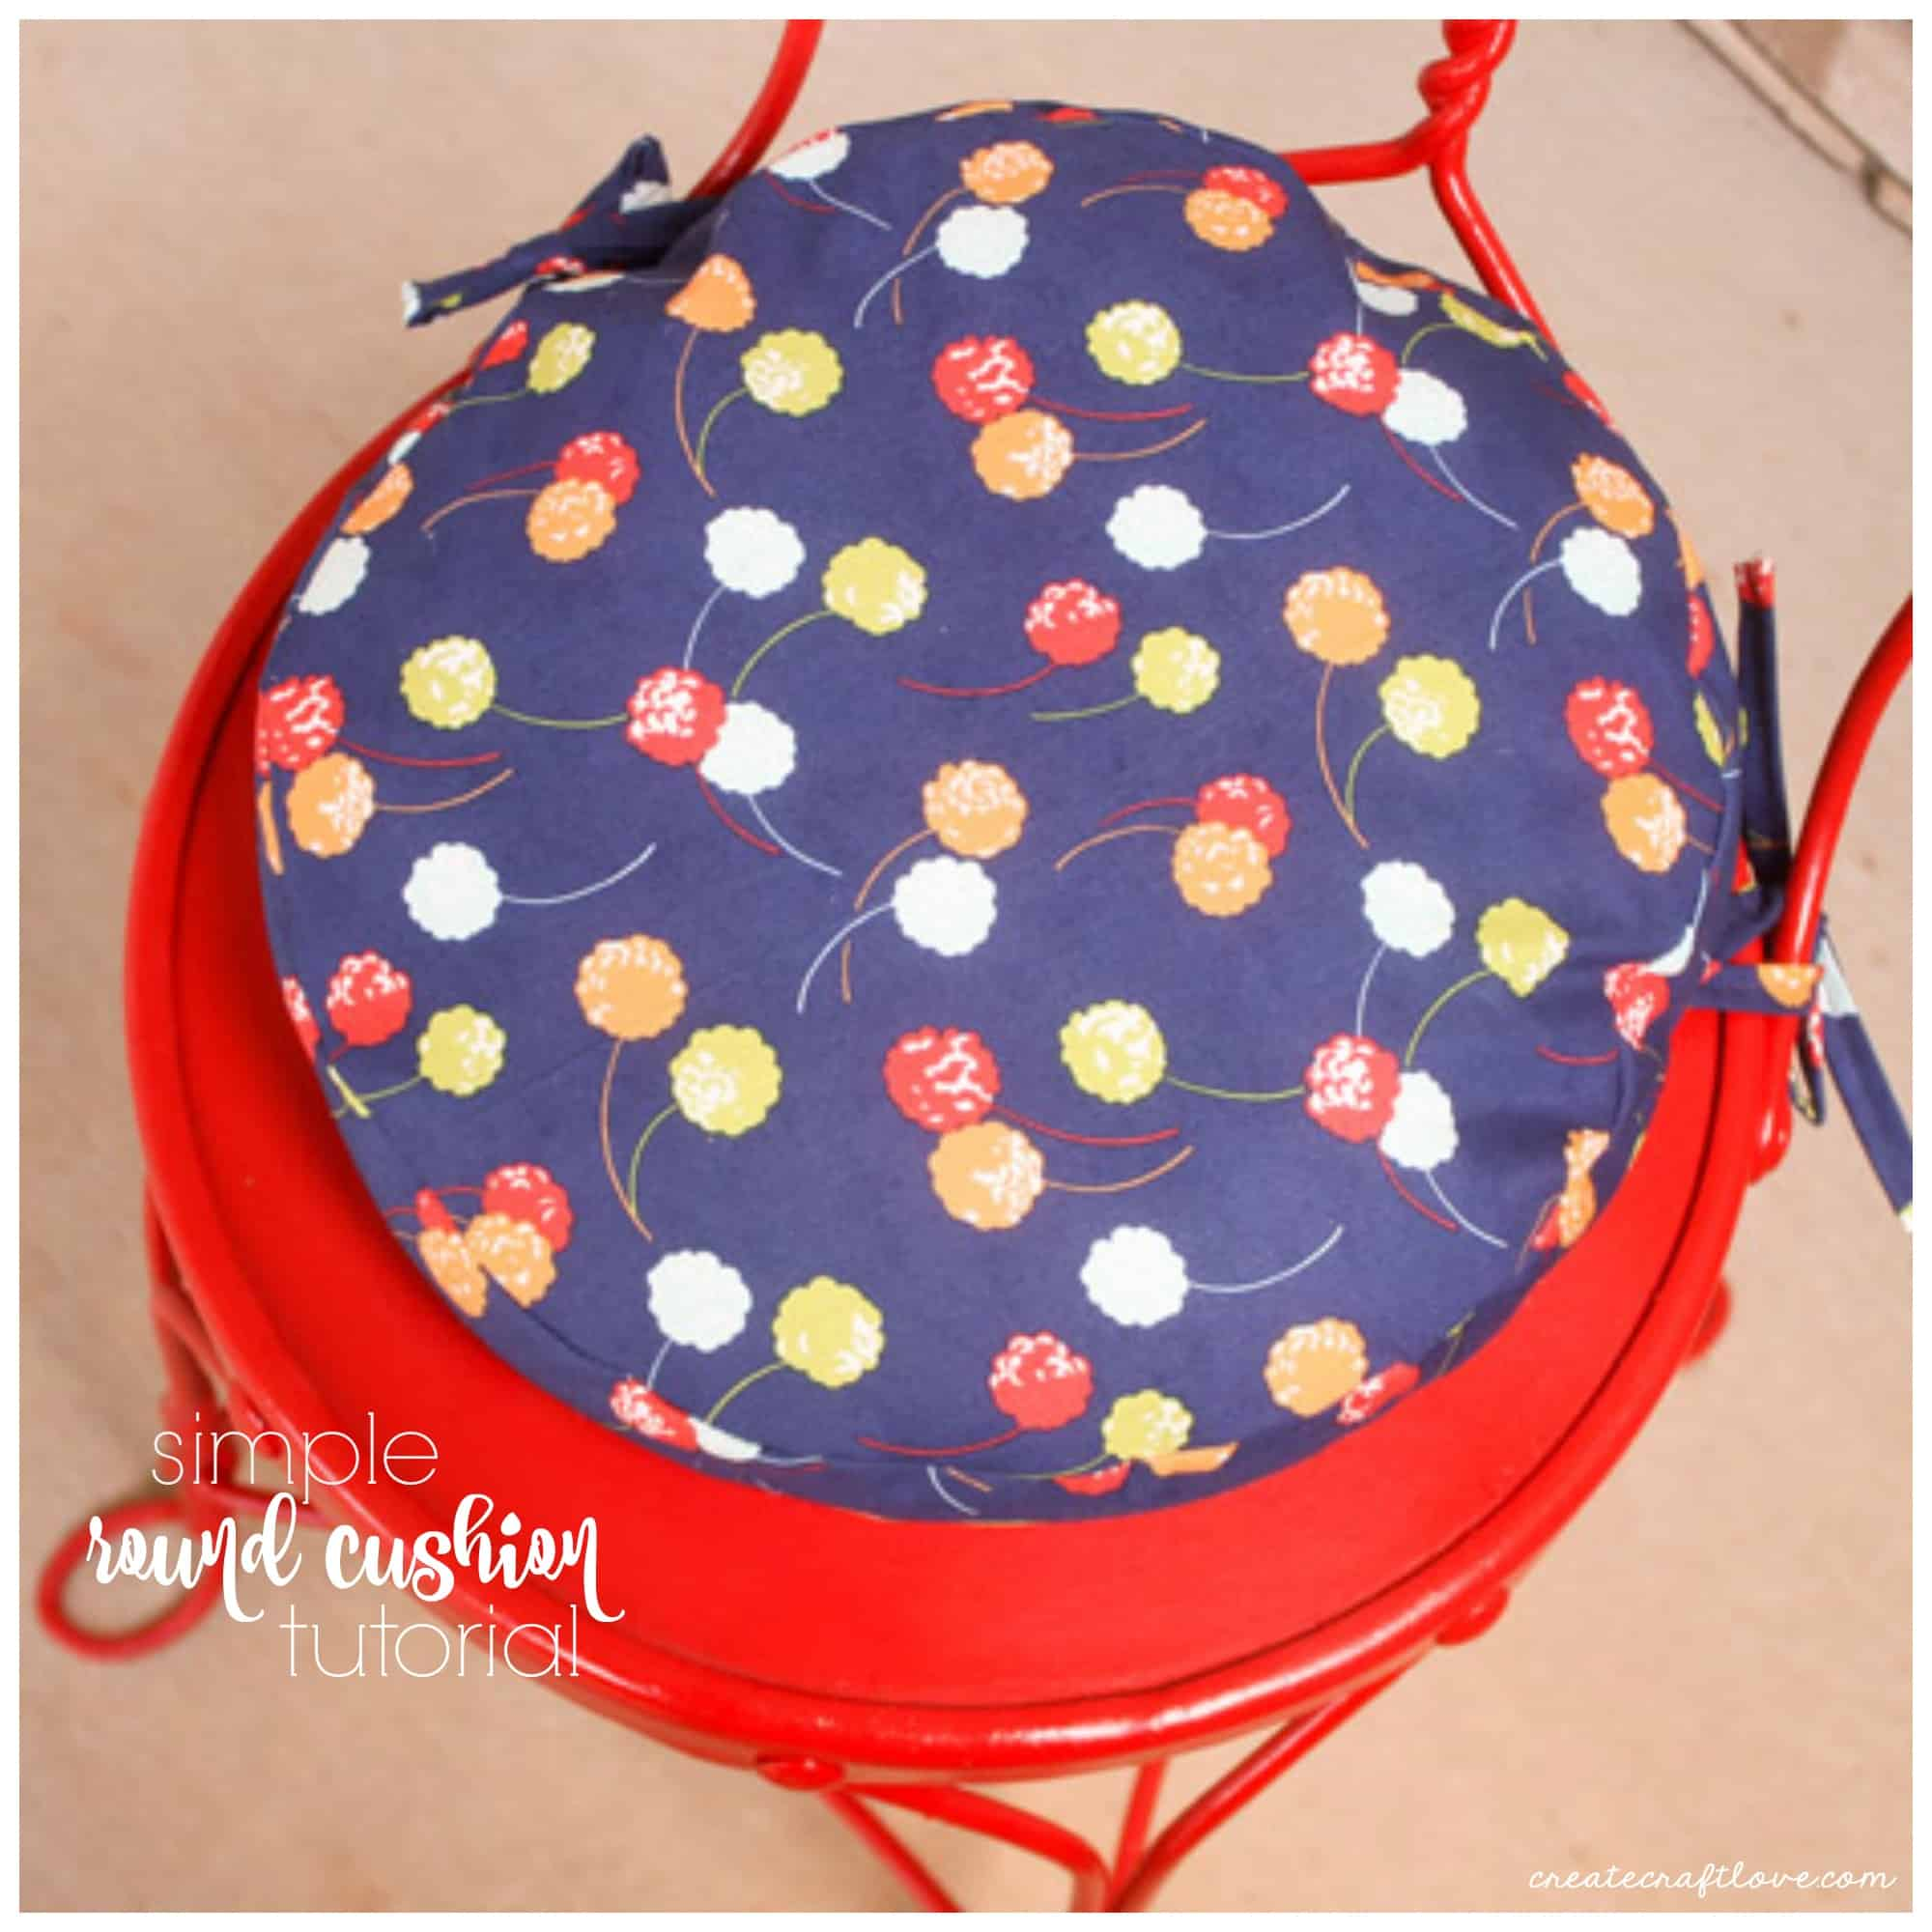 This Simple Round Cushion tutorial will walk you through how to create your own!